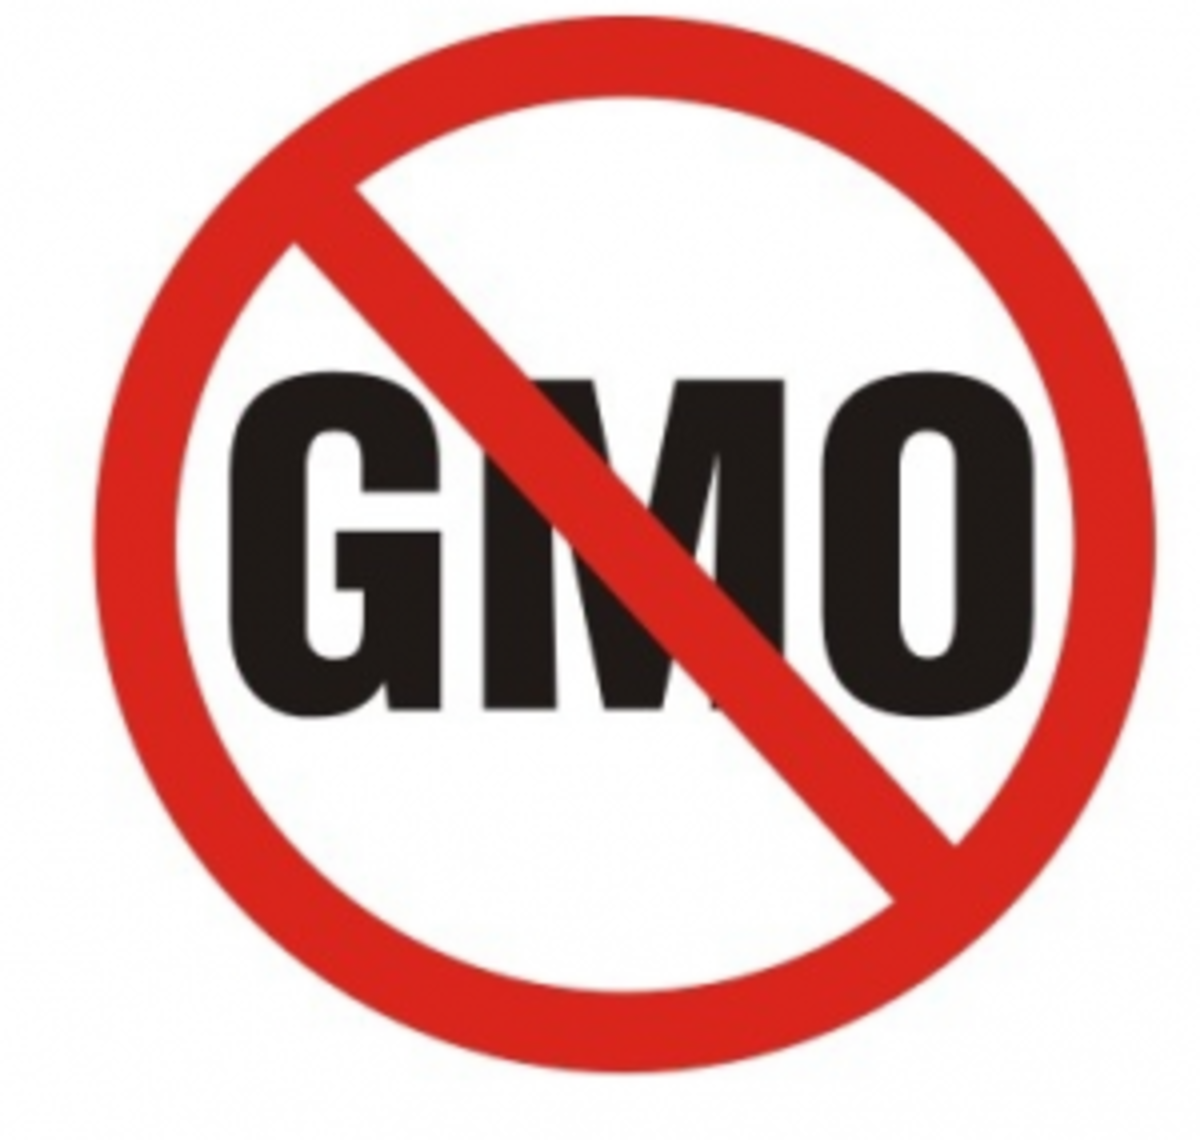 Many countries around the world already have taken action against GMOs. In the United States, legislation is beginning to gain momentum in states like California and Vermont.